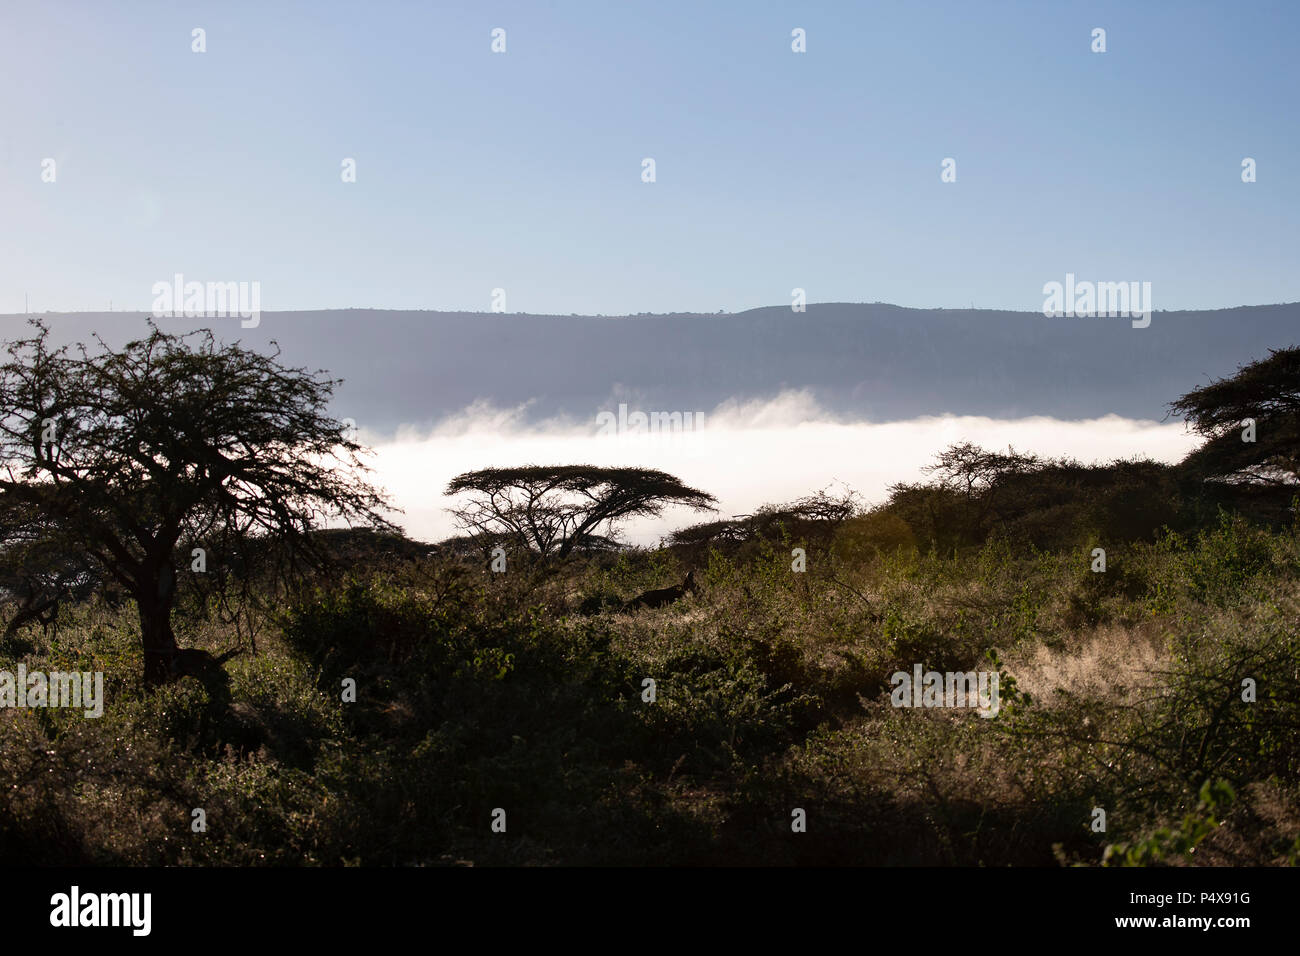 Low early morning mist over an African game reserve - Stock Image